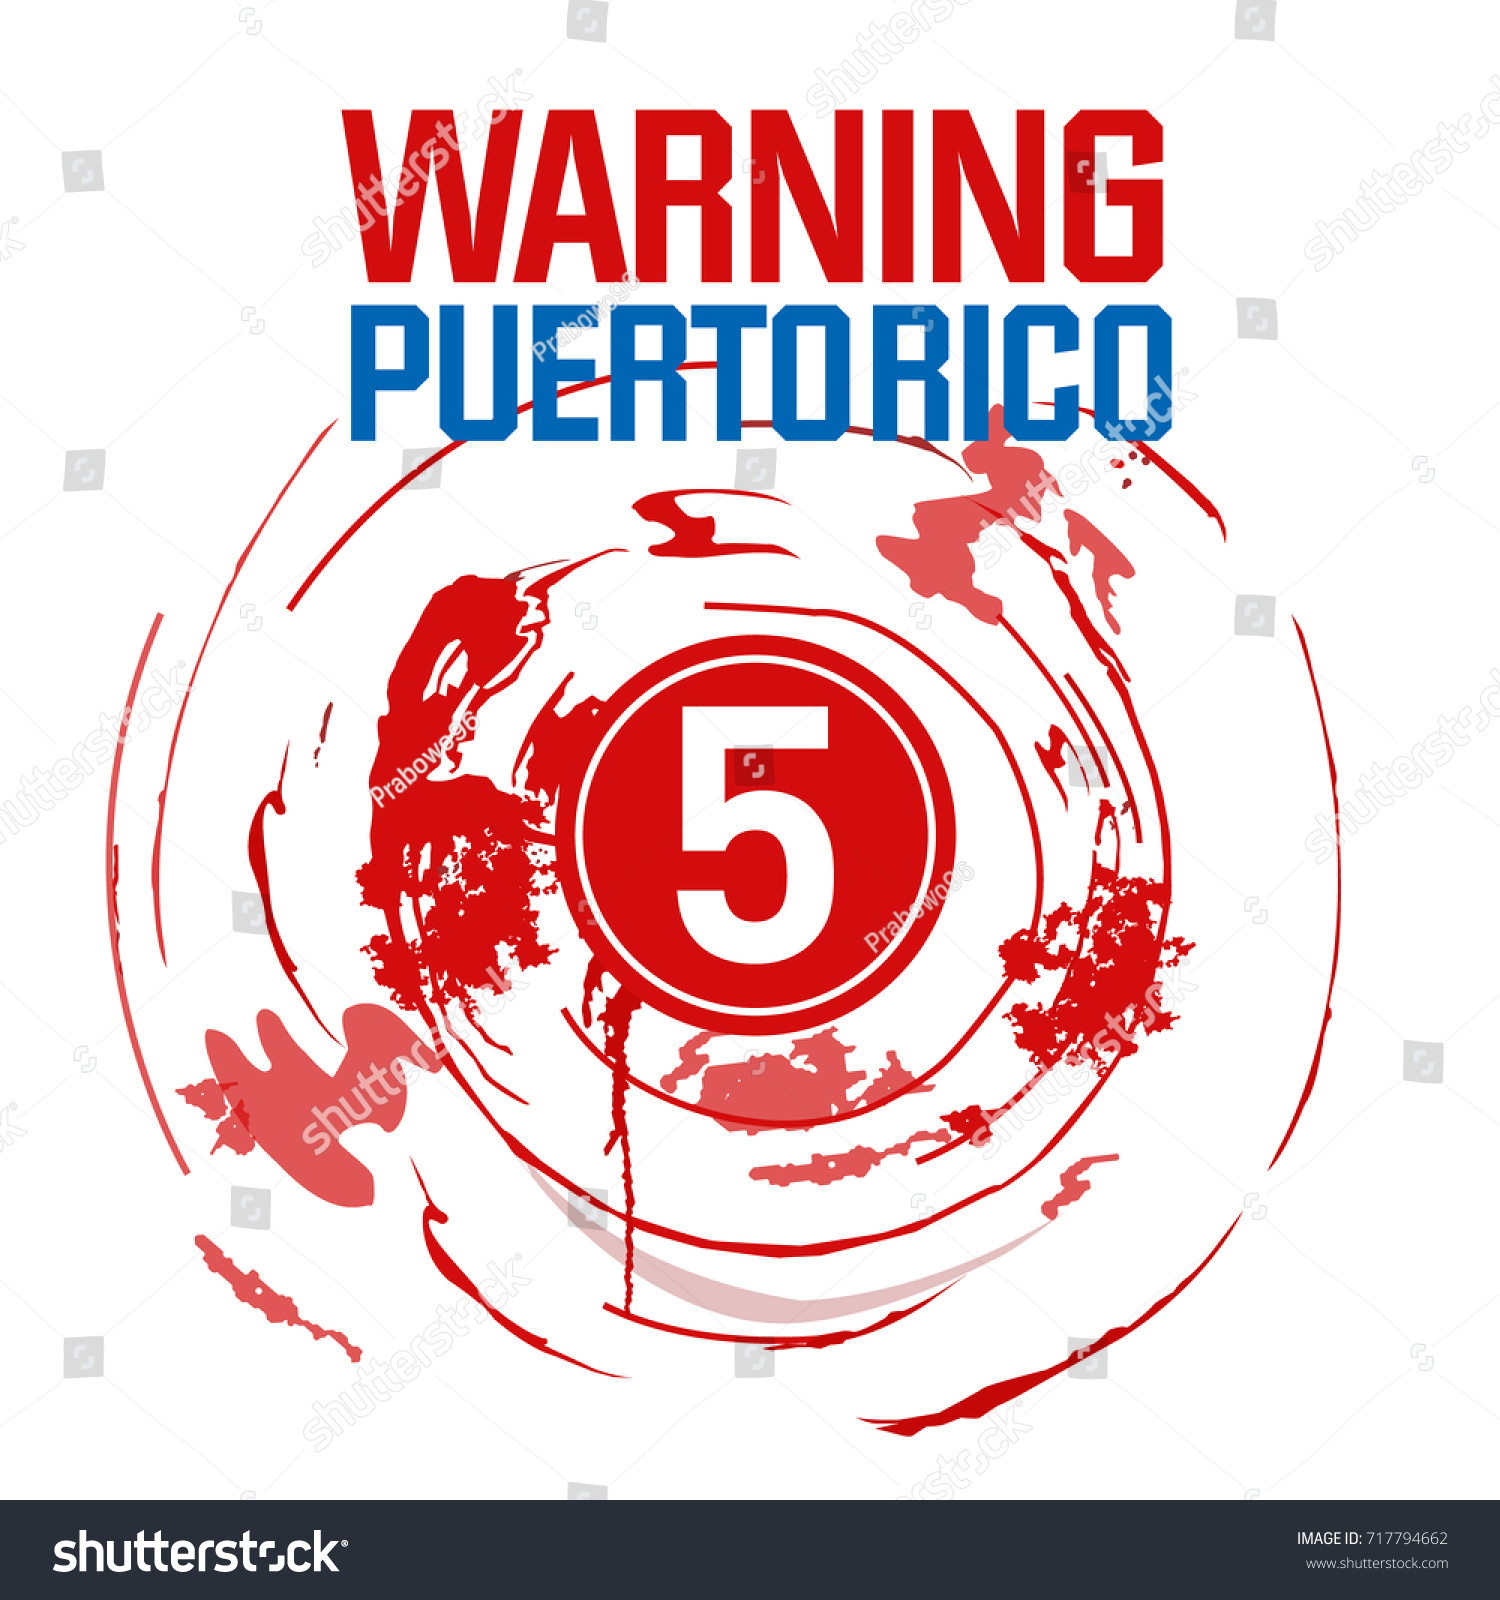 Public alerts natural disaster hurricane maria stock vector public alerts for natural disaster hurricane maria track and path prediction area of puerto rico biocorpaavc Choice Image